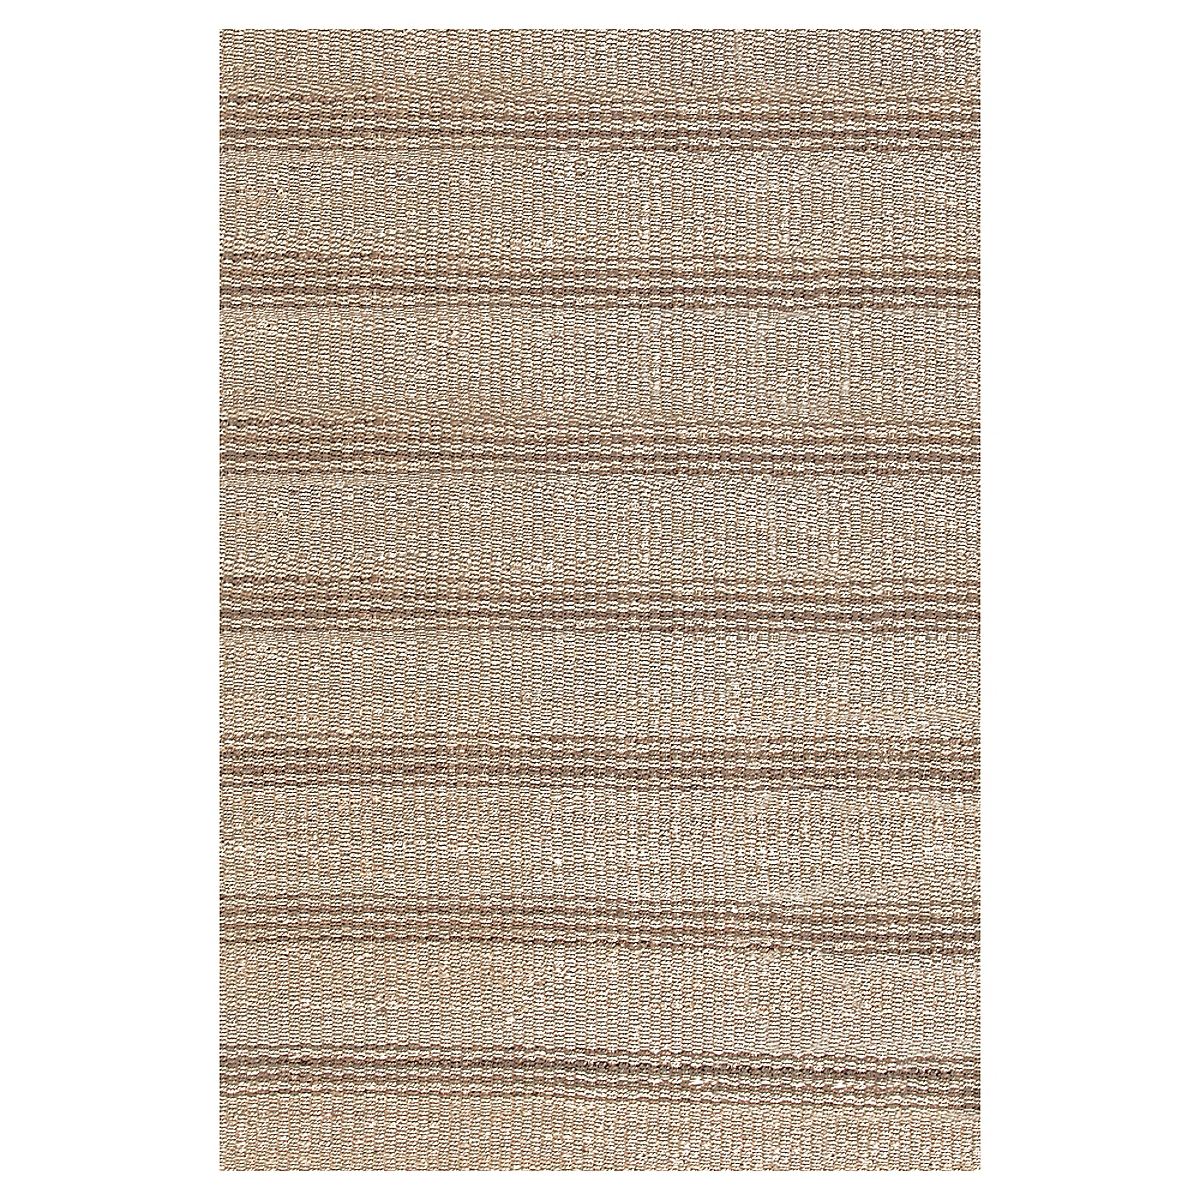 Jute Ticking Natural Woven Rug